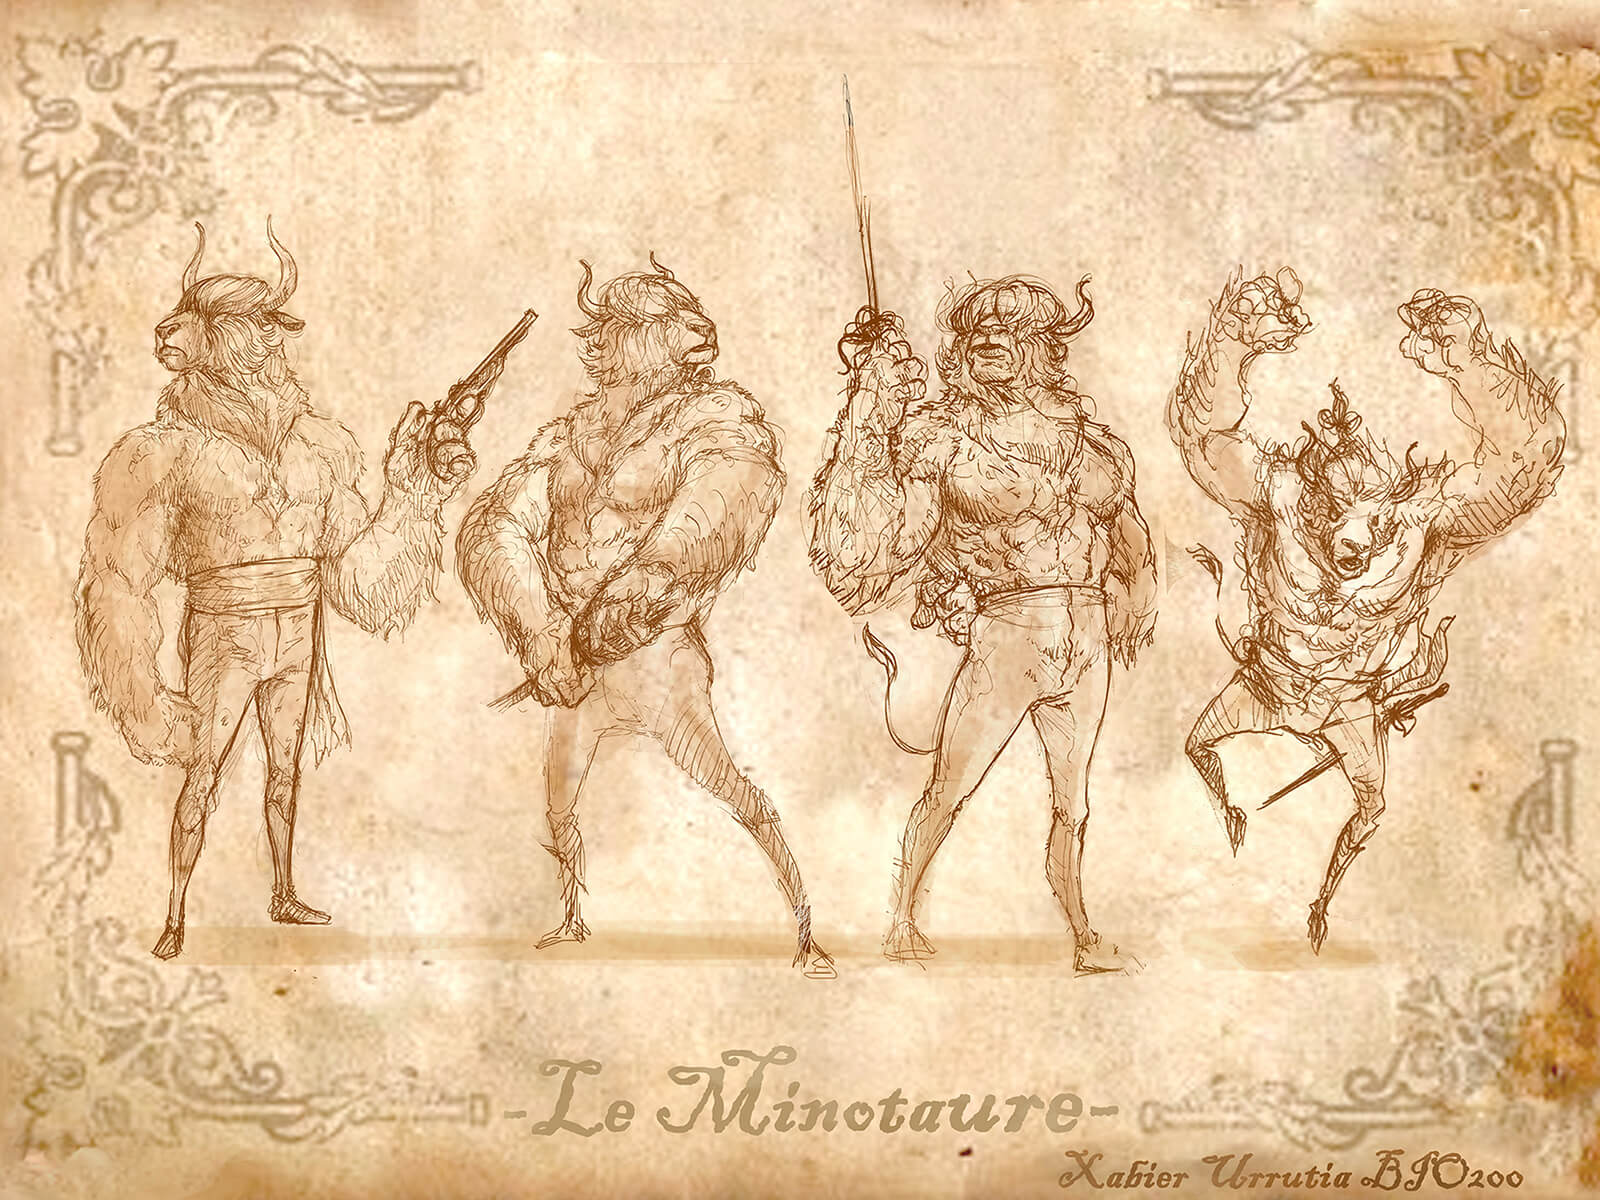 Black-and-white sketches of a minotaur wielding a rapier and a pistol, including its lair and description of its habits.